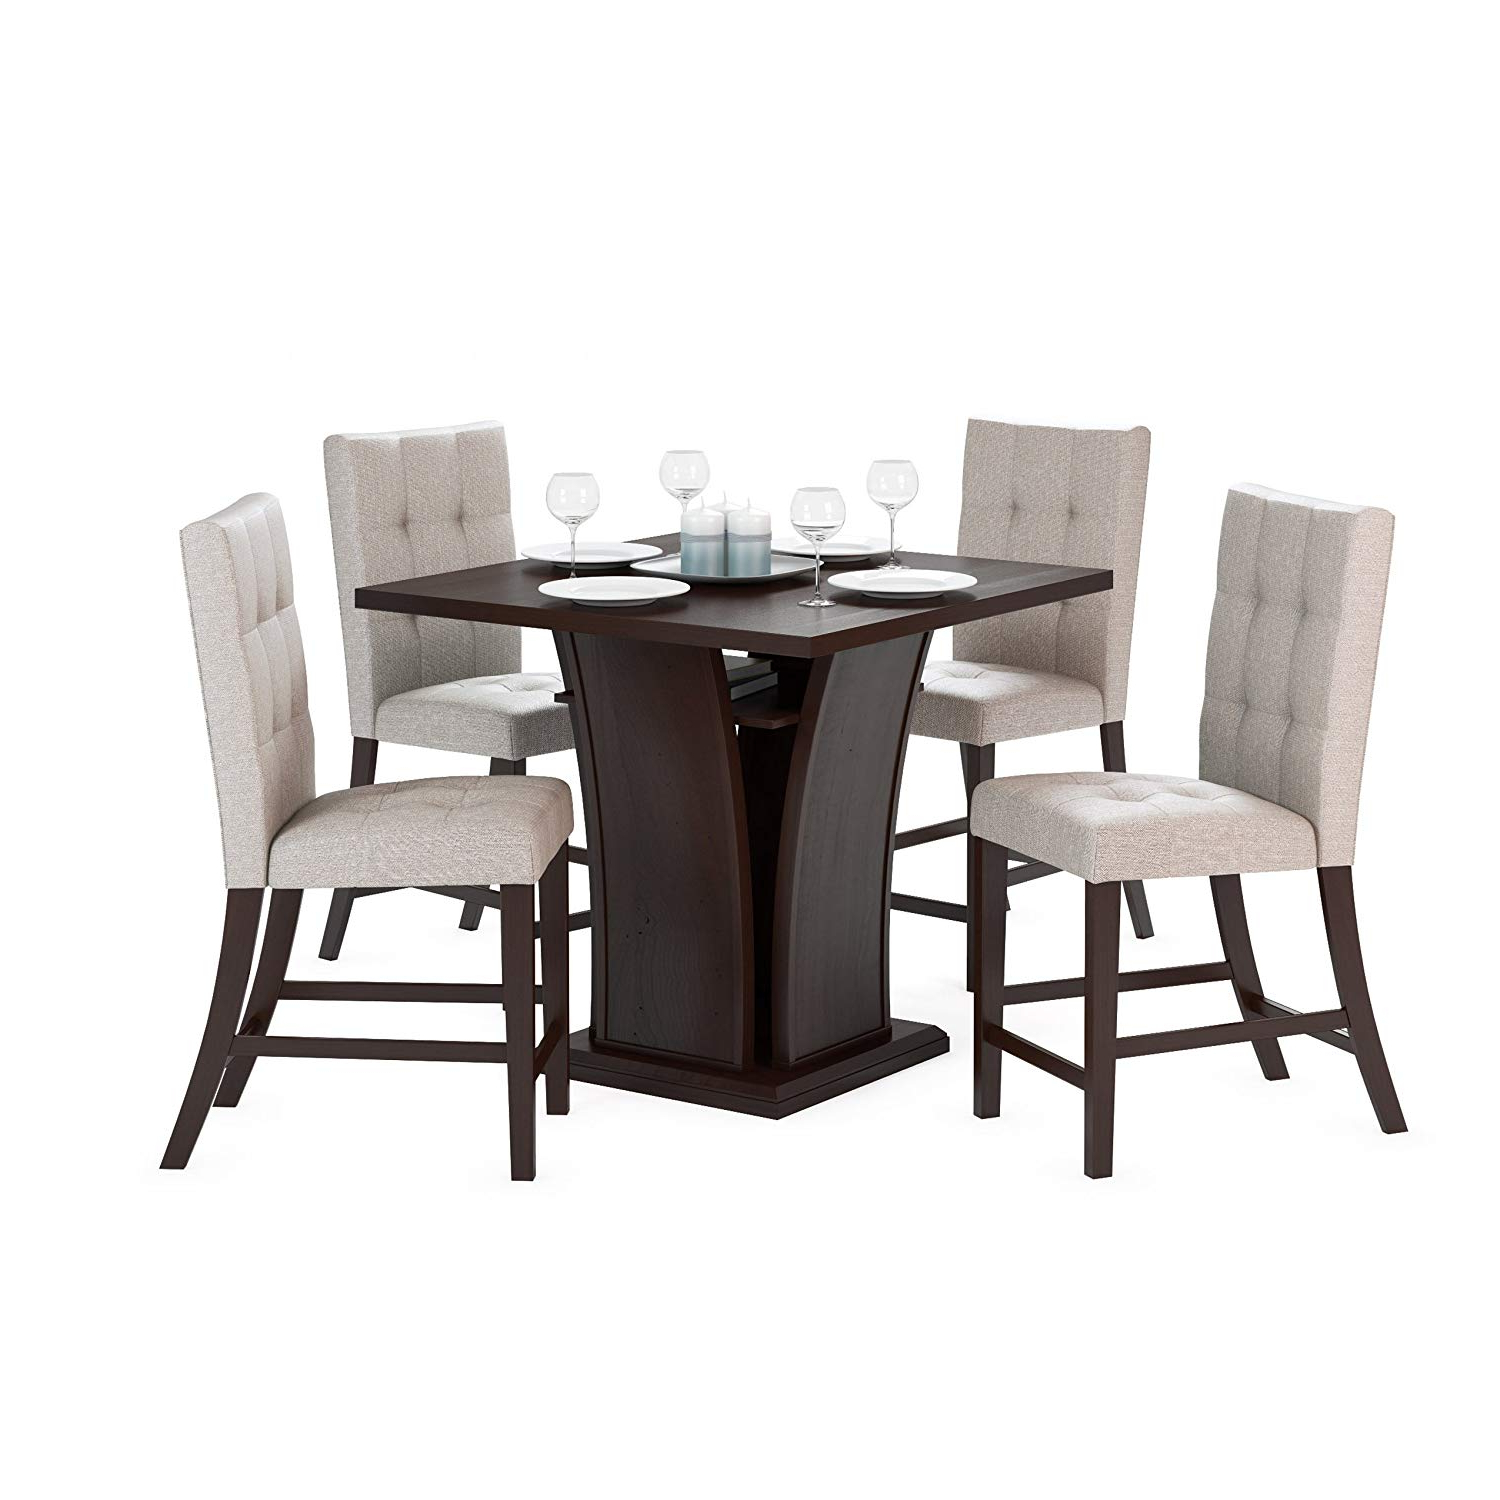 "Corliving Dwp 390 Z1 Bistro 5 Piece 36"" Counter Height Cappuccino Wood  Dining Set With Storage Shelf  Tufted Platinum Sage Seats Regarding Recent Bistro Transitional 4 Seating Square Dining Tables (Gallery 6 of 30)"